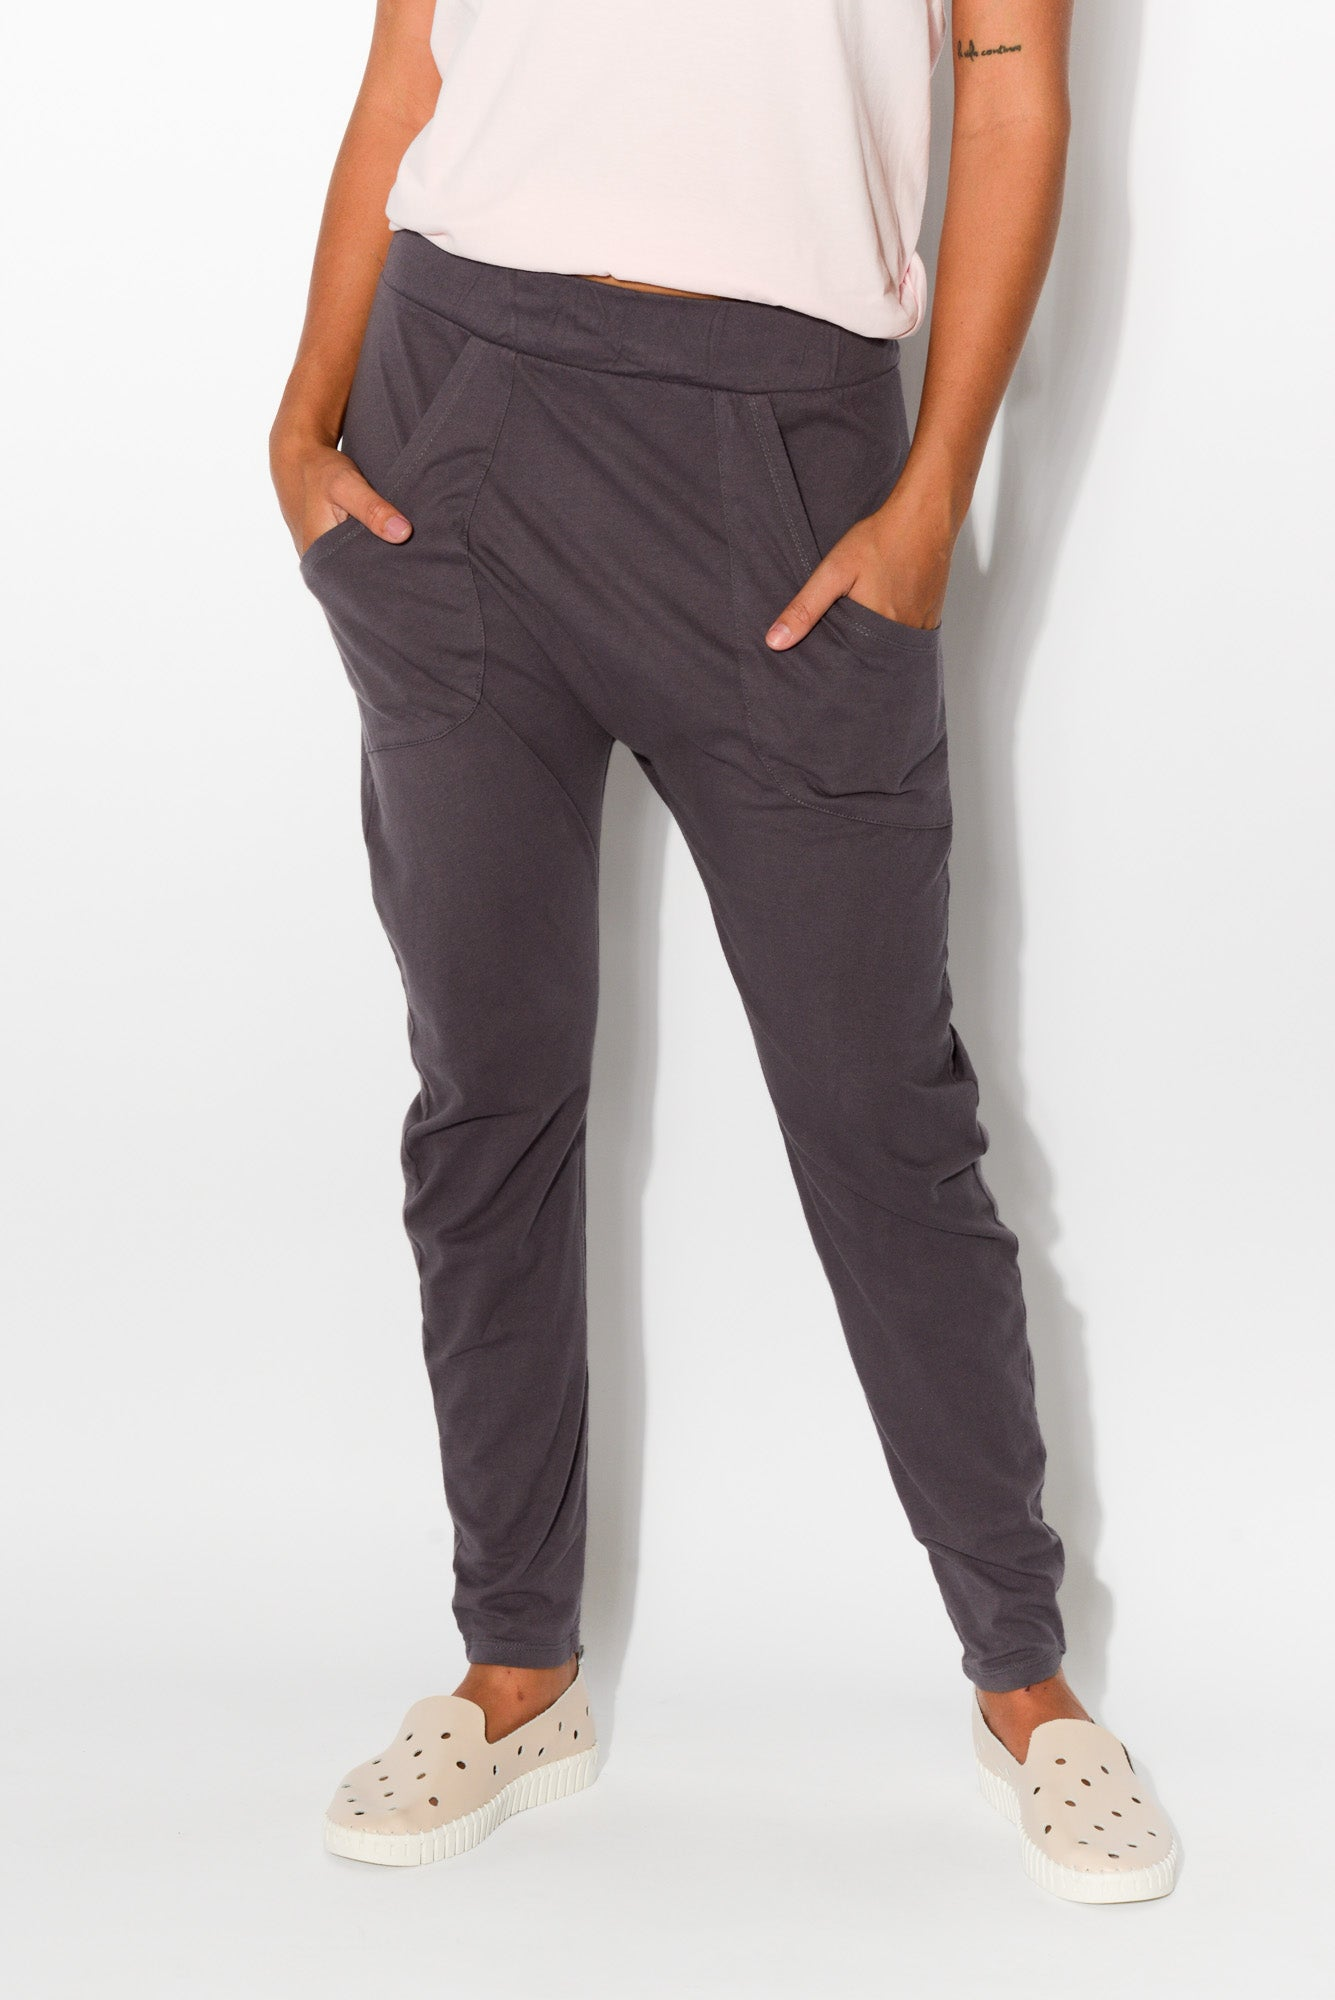 Charcoal Cotton Drop Crotch Pant - Blue Bungalow